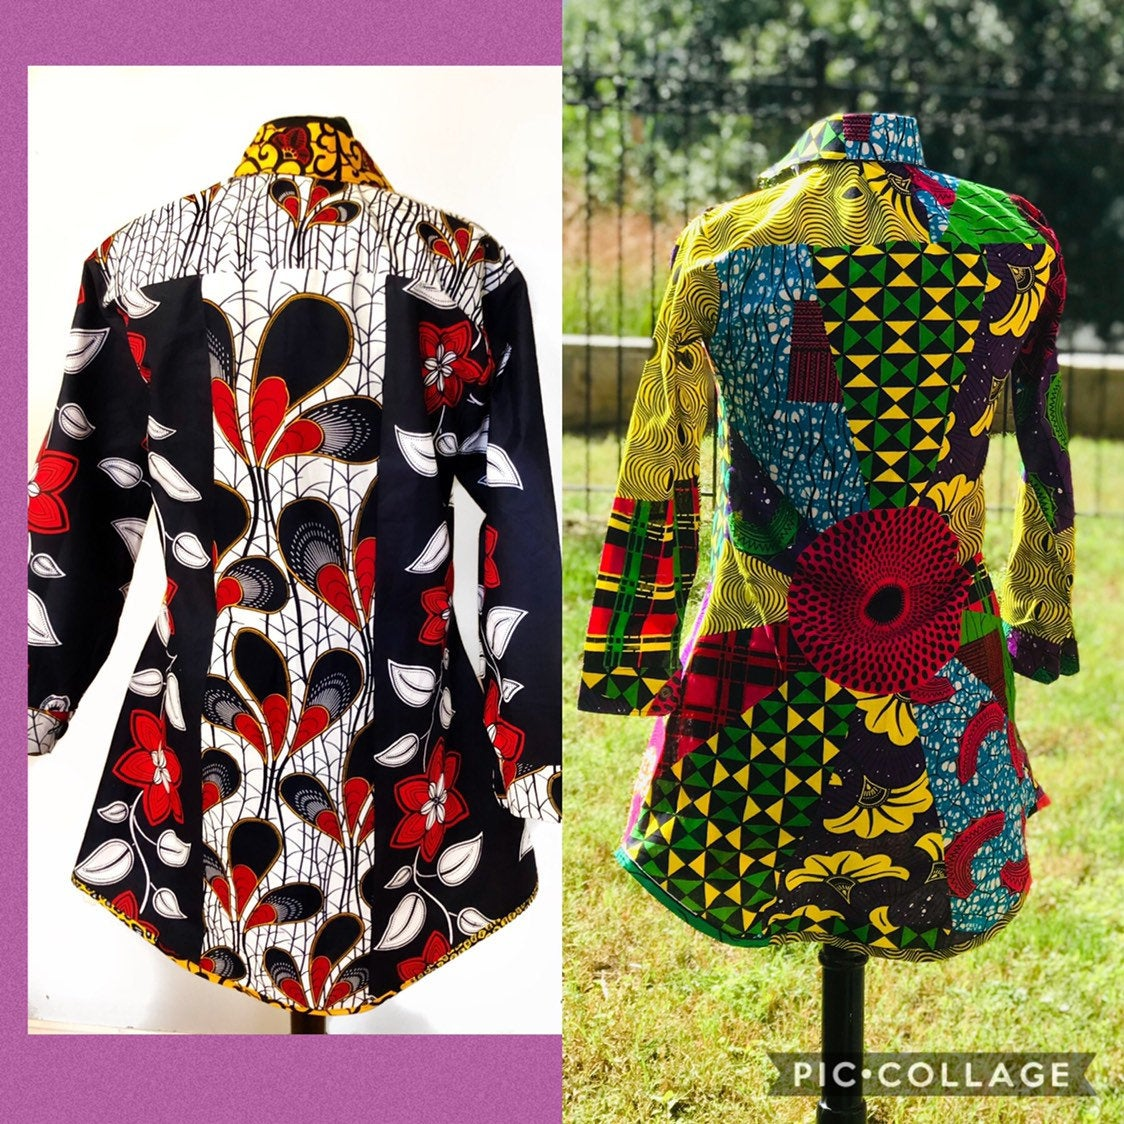 Prisca multi-print 'Michelle' Shirt dress, in Yellow/Red/Back/Blue colors, 100% cotton, Ankara print